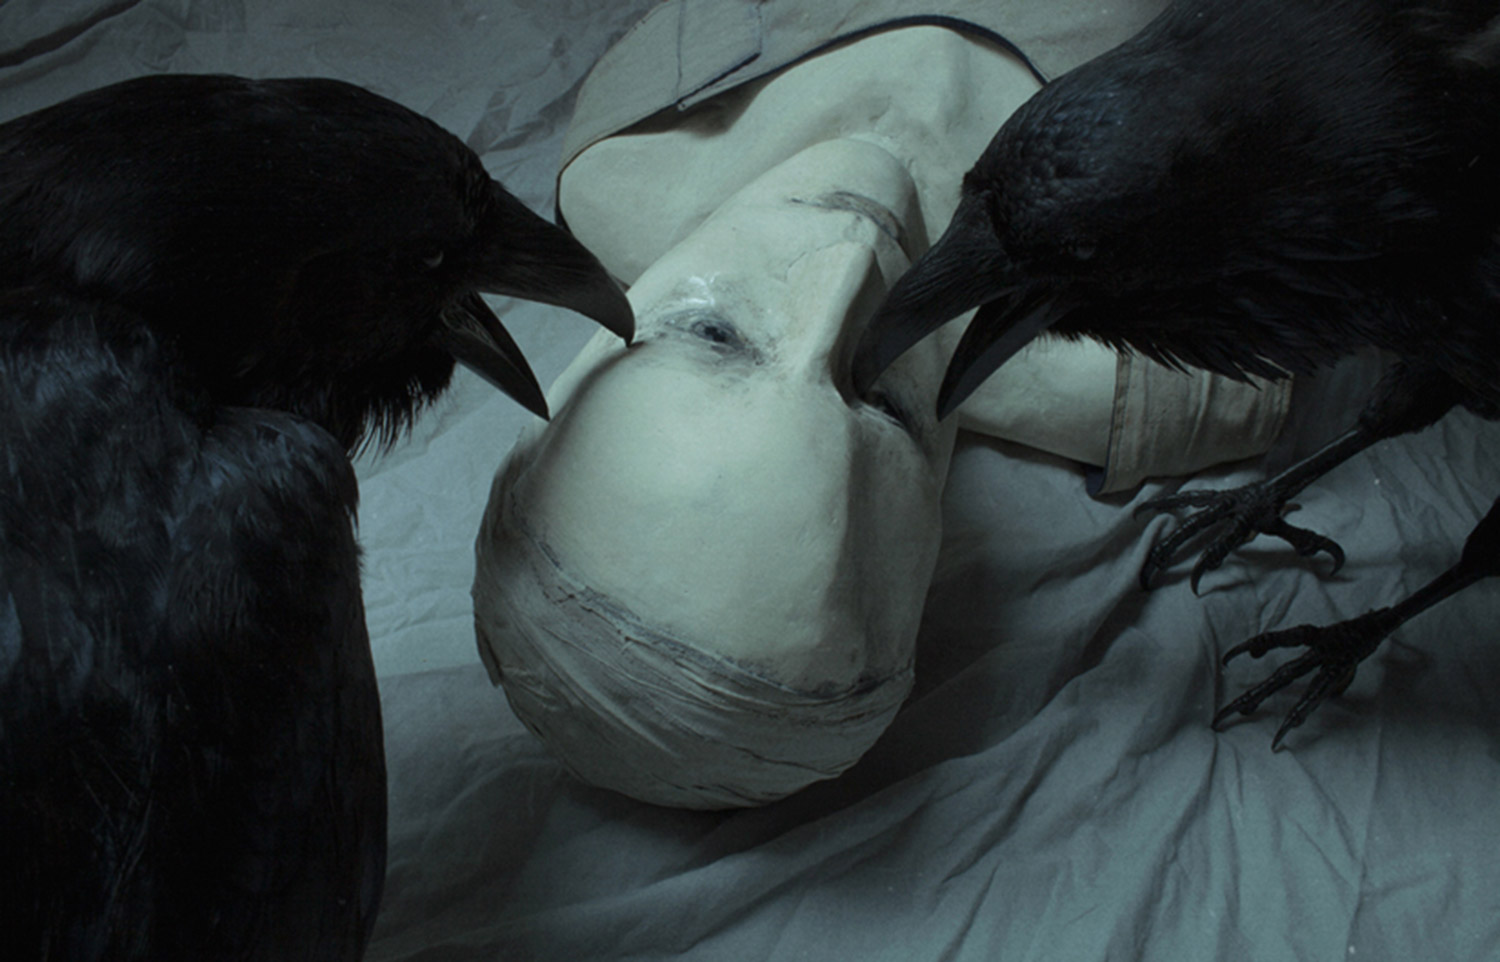 Laura Makabresku, Sara - Ravens picking at plastered face